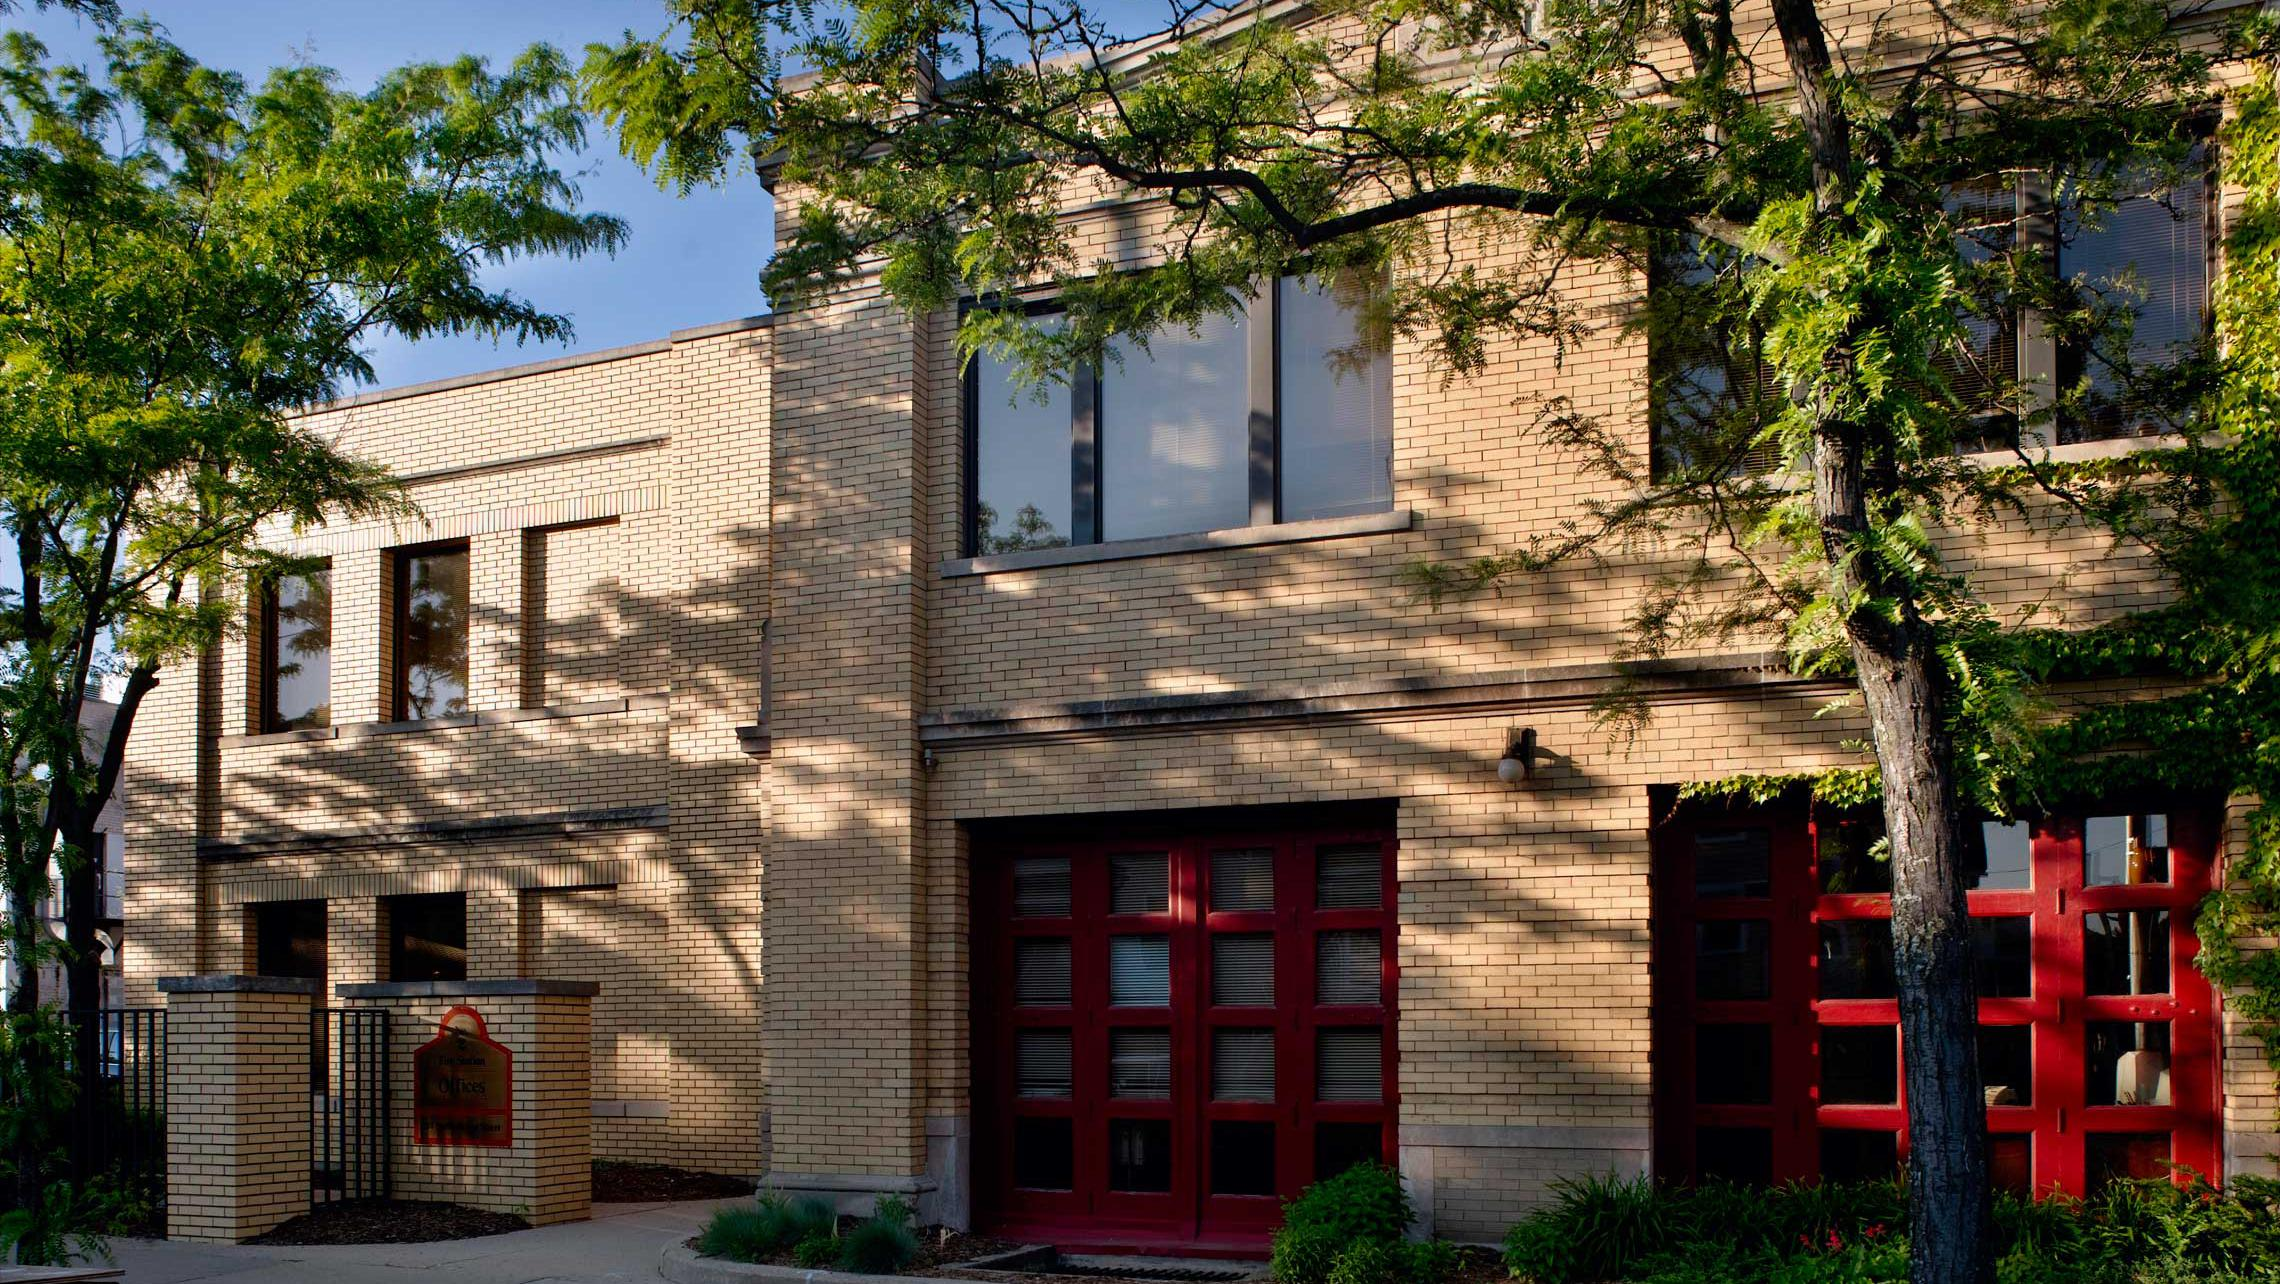 ULI Fire Station Number 2 Adaptive Reuse